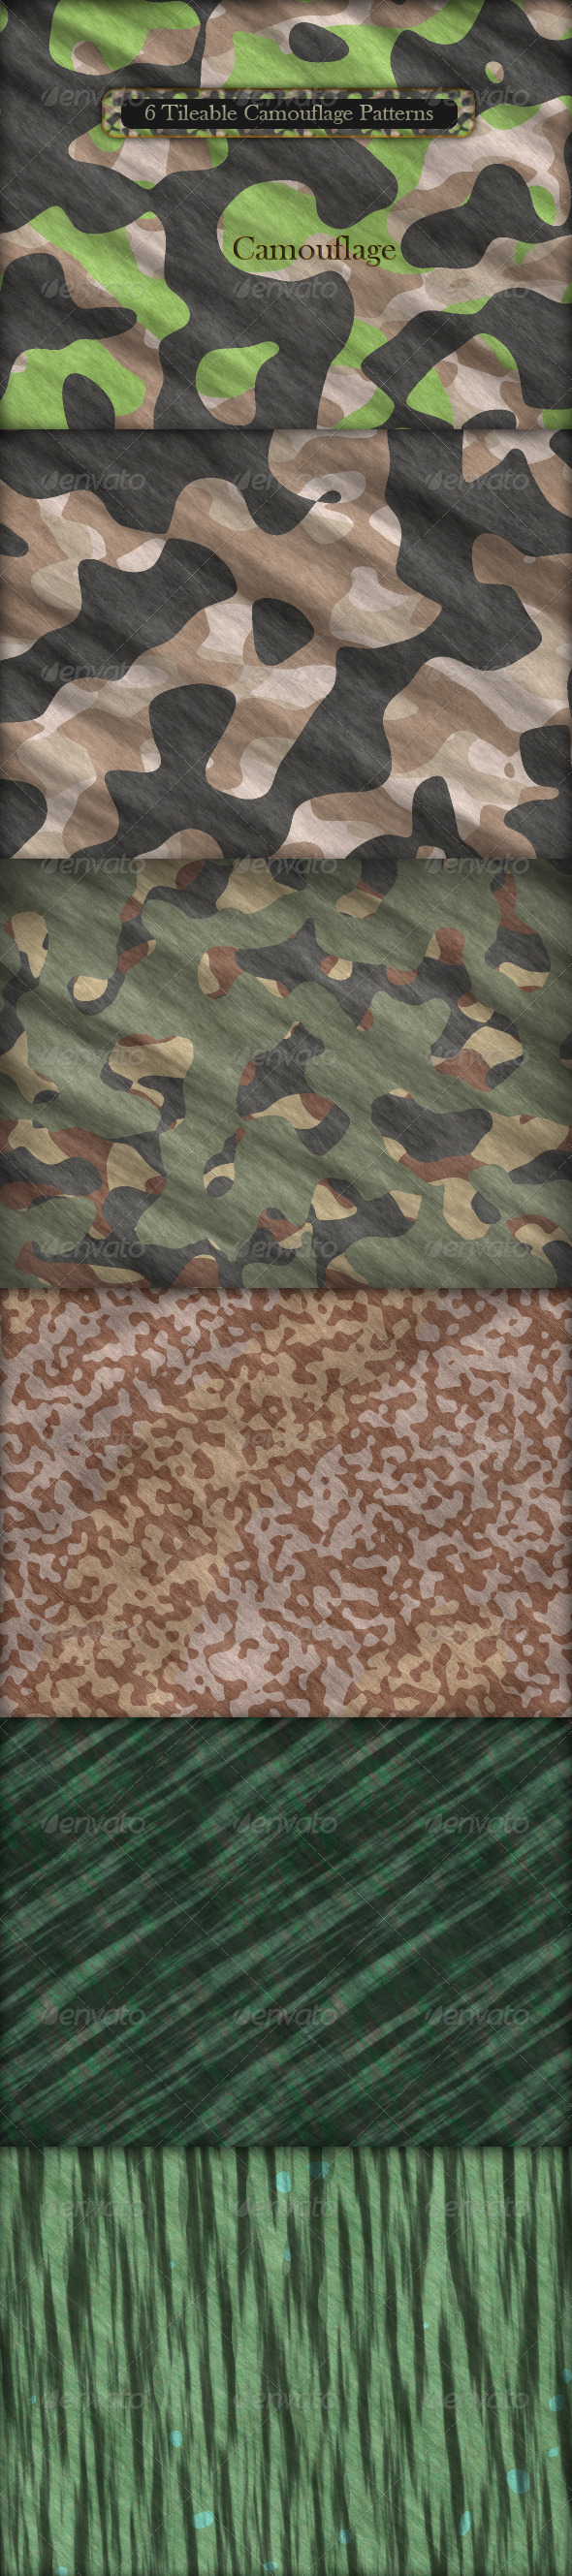 GraphicRiver 6 Tileable Camouflage Patterns 164860